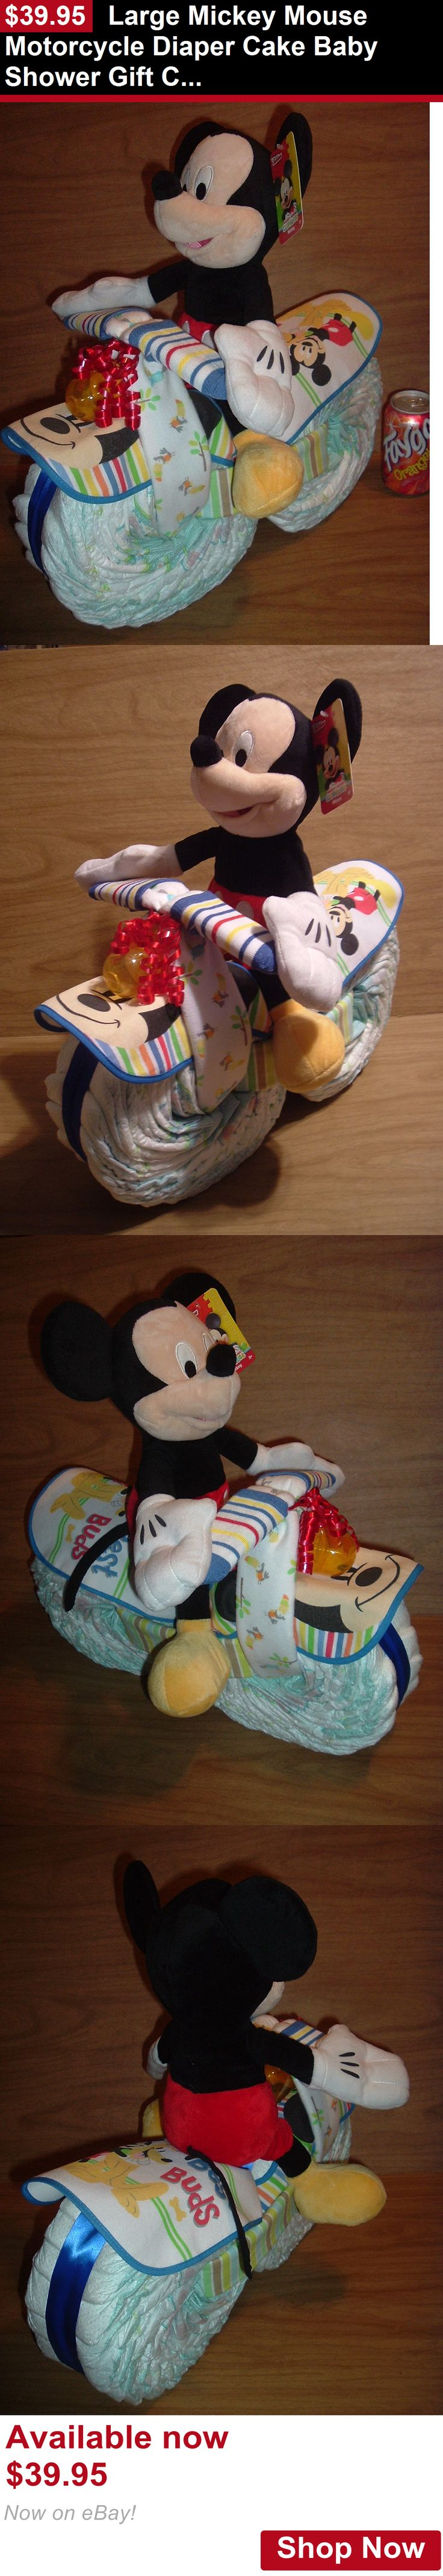 Baby Diaper Cakes: Large Mickey Mouse Motorcycle Diaper Cake Baby Shower Gift Centerpiece BUY IT NOW ONLY: $39.95